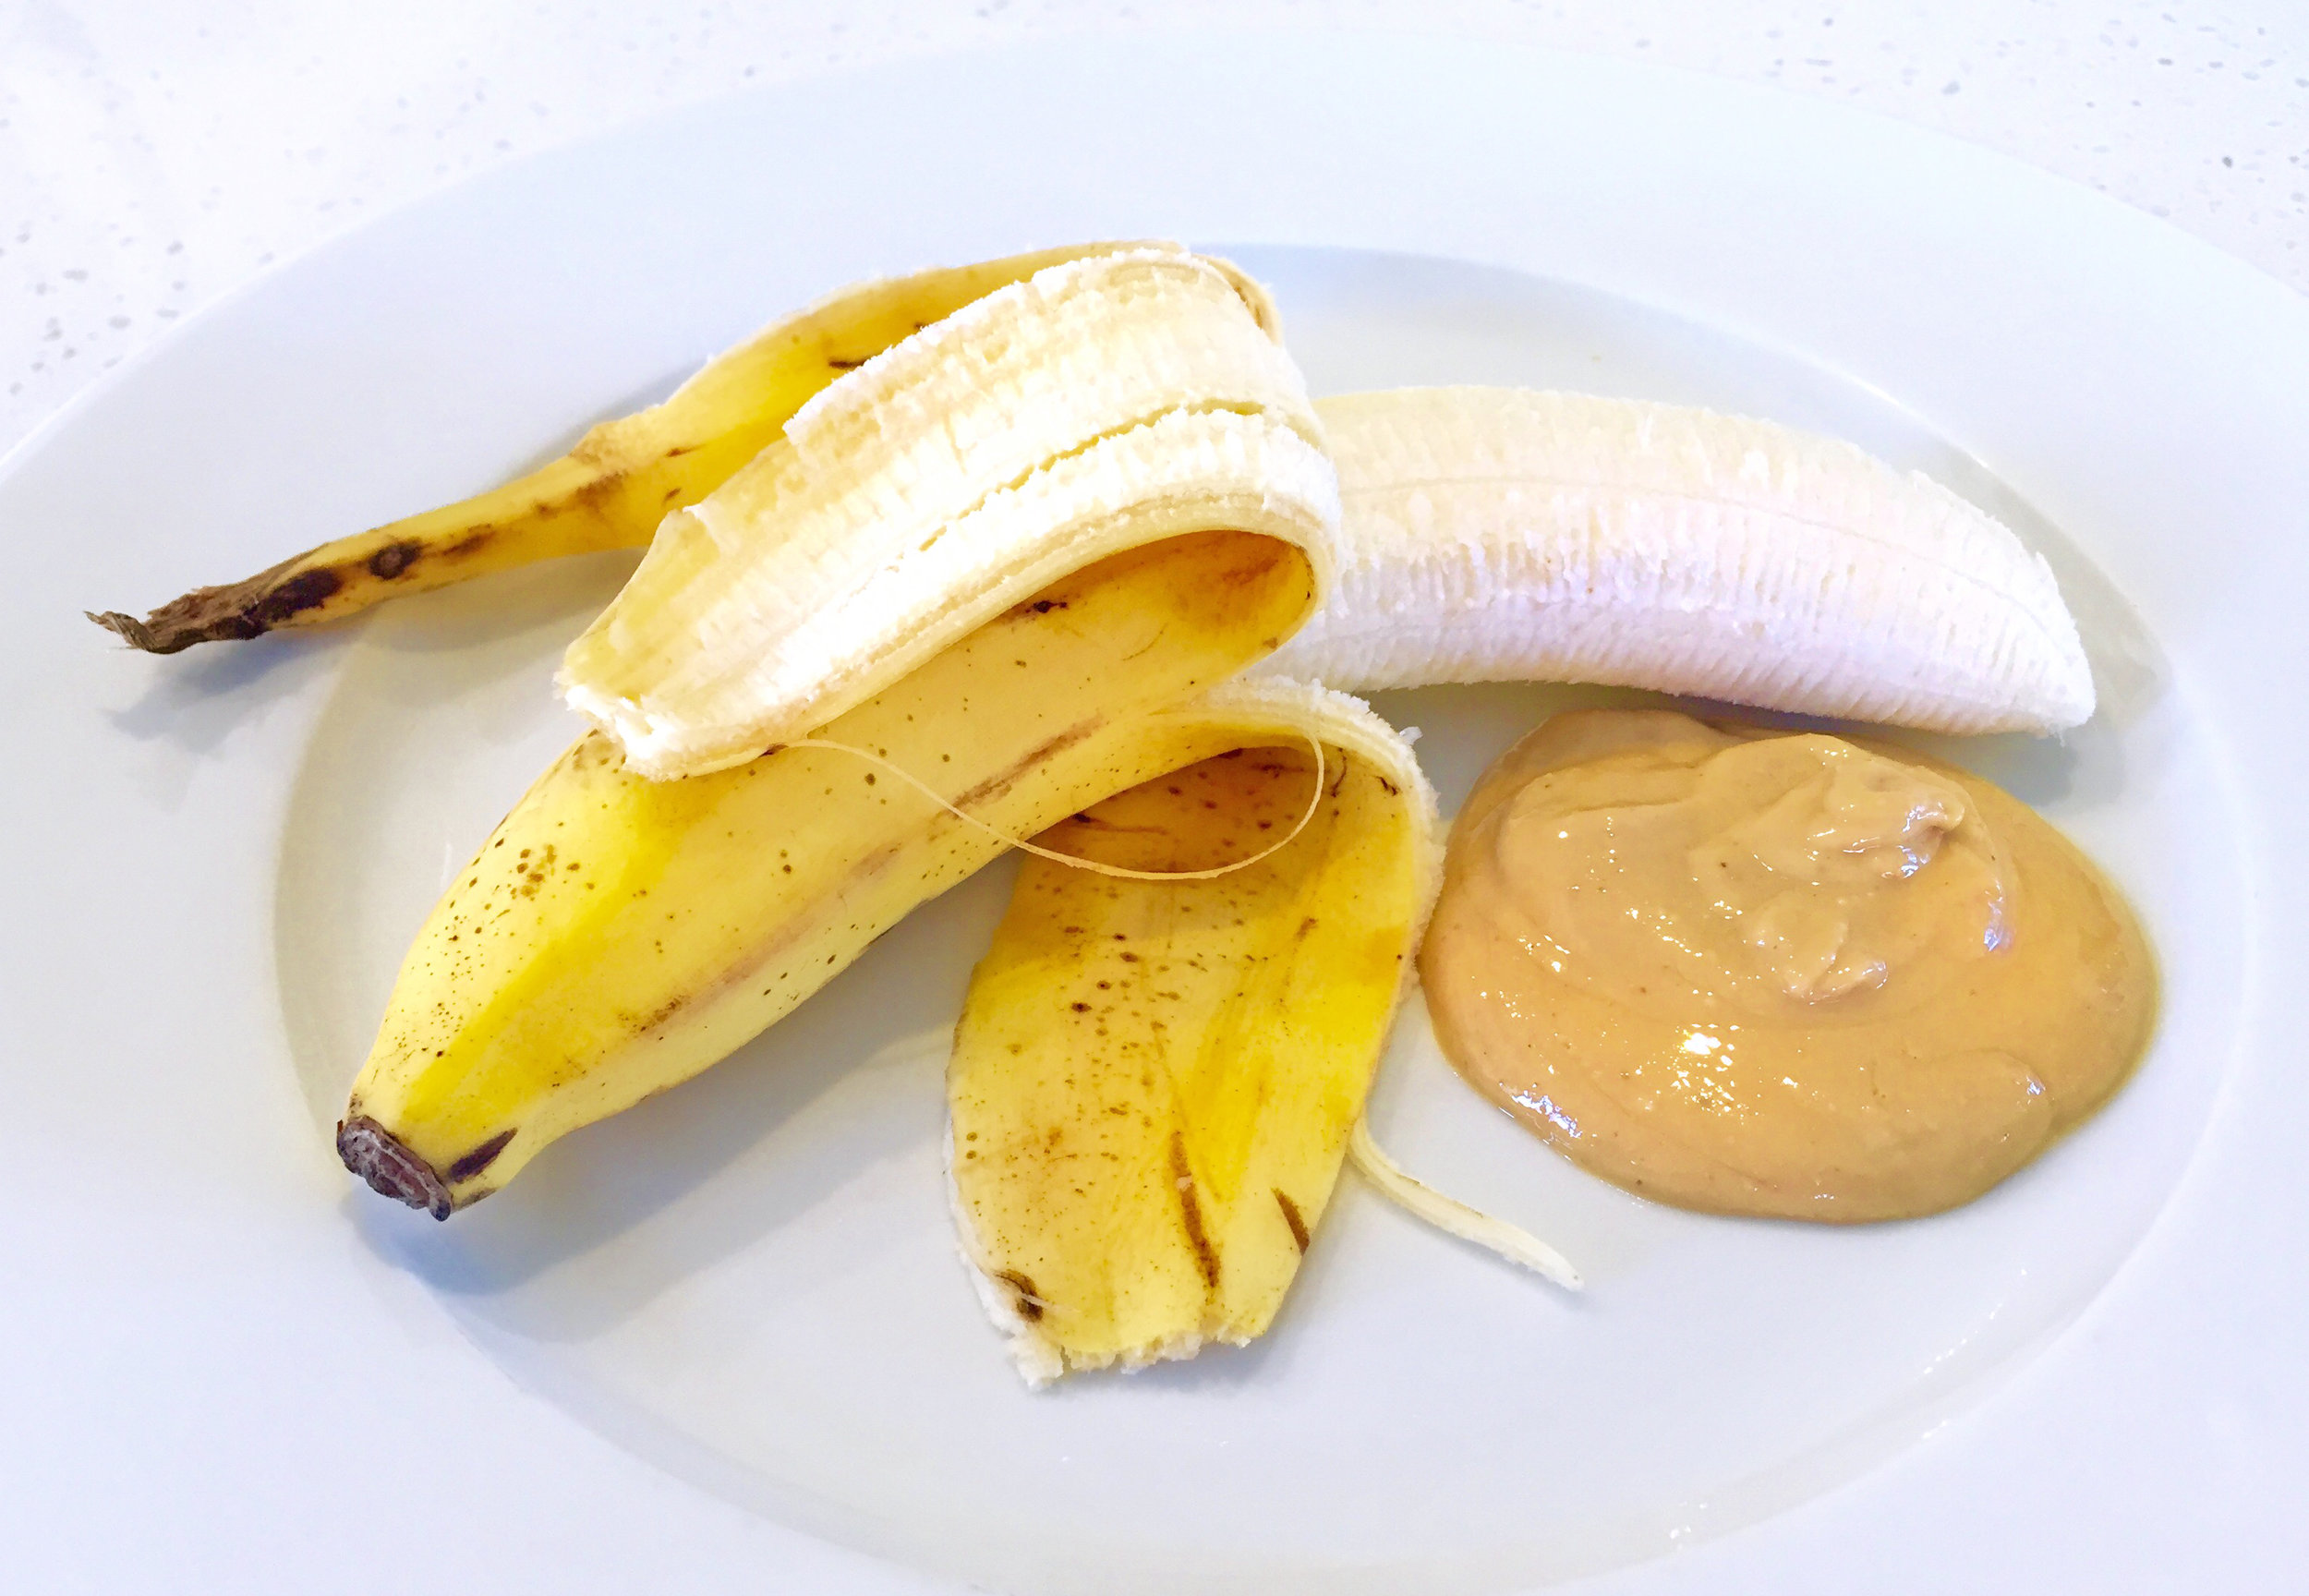 Snack - banana and almond butter.jpg